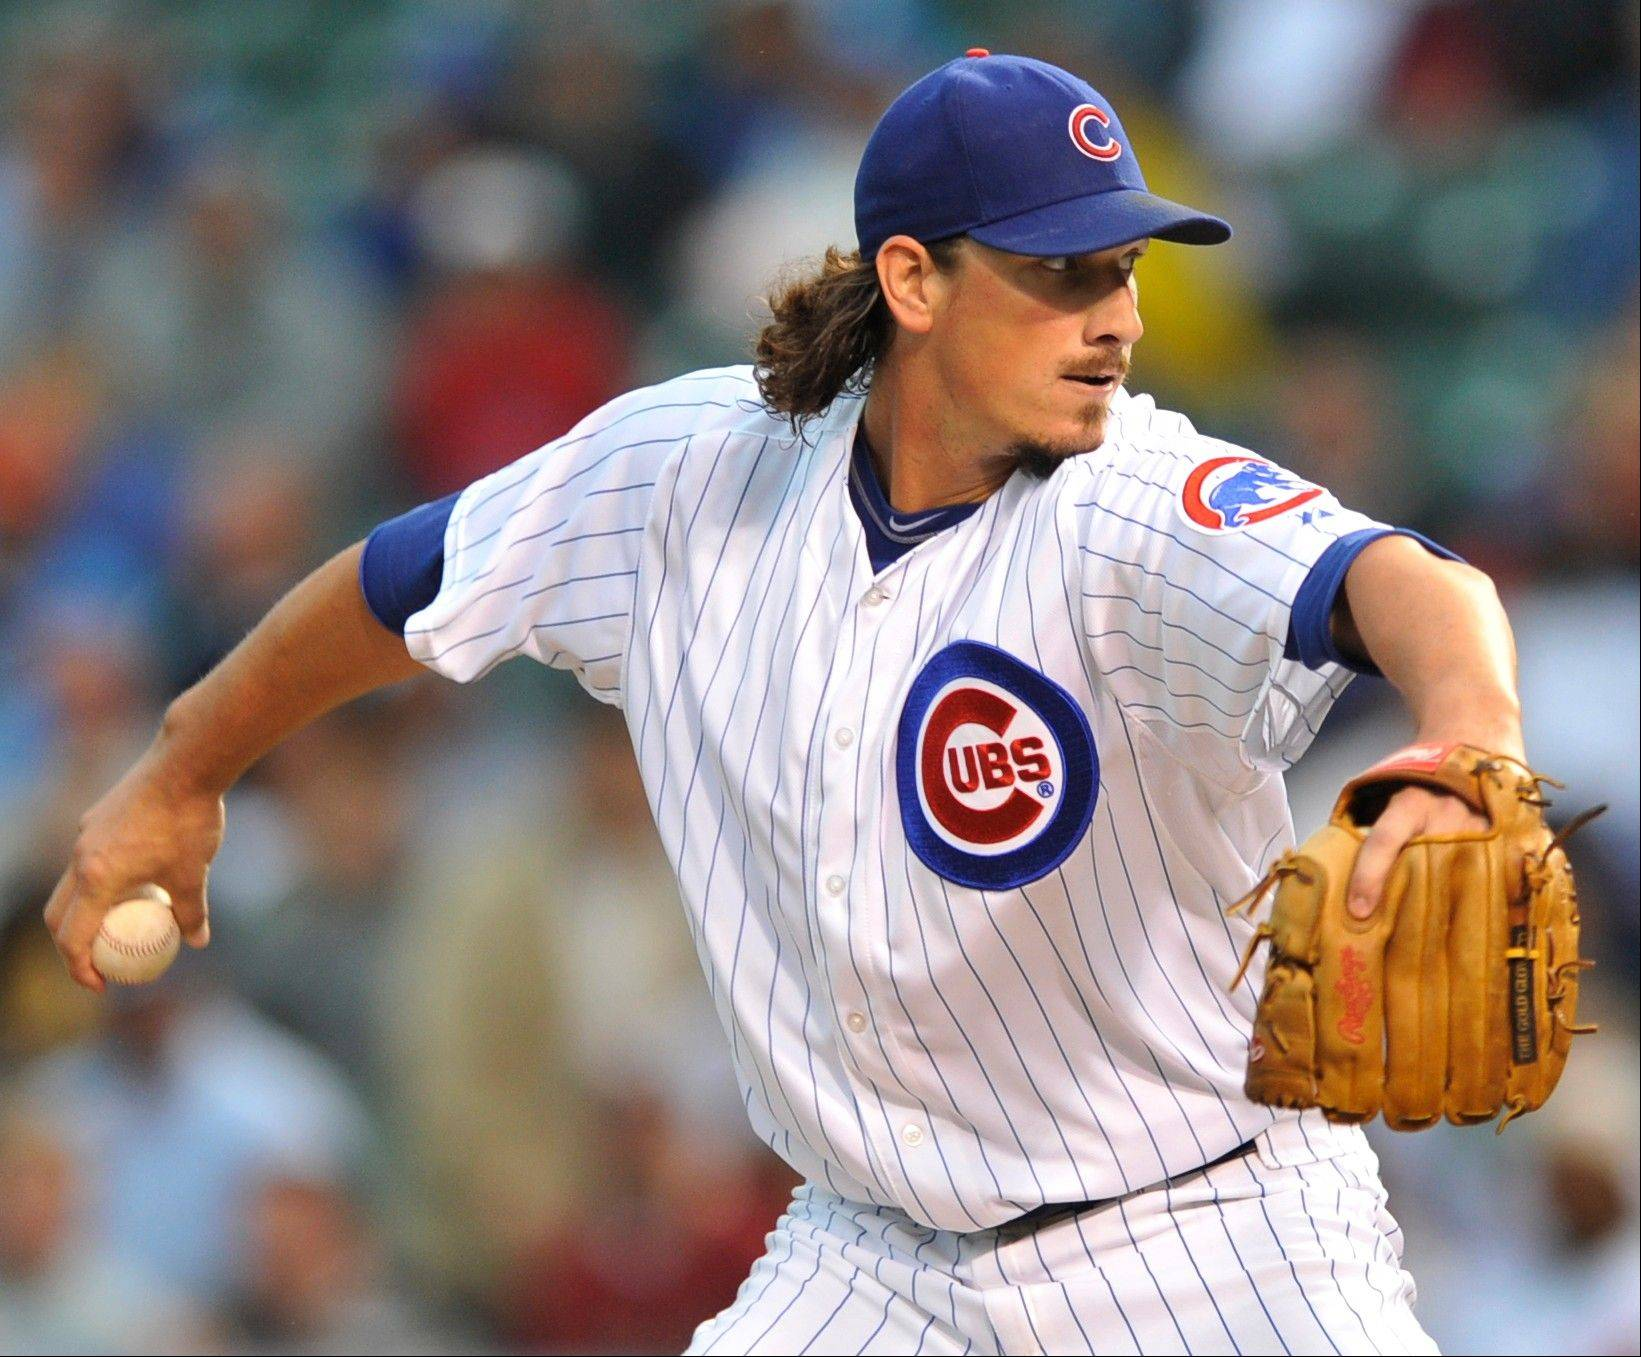 Chicago Cubs starter Jeff Samardzija delivers a pitch against the Houston Astros in the first inning during a baseball game Monday in Chicago.